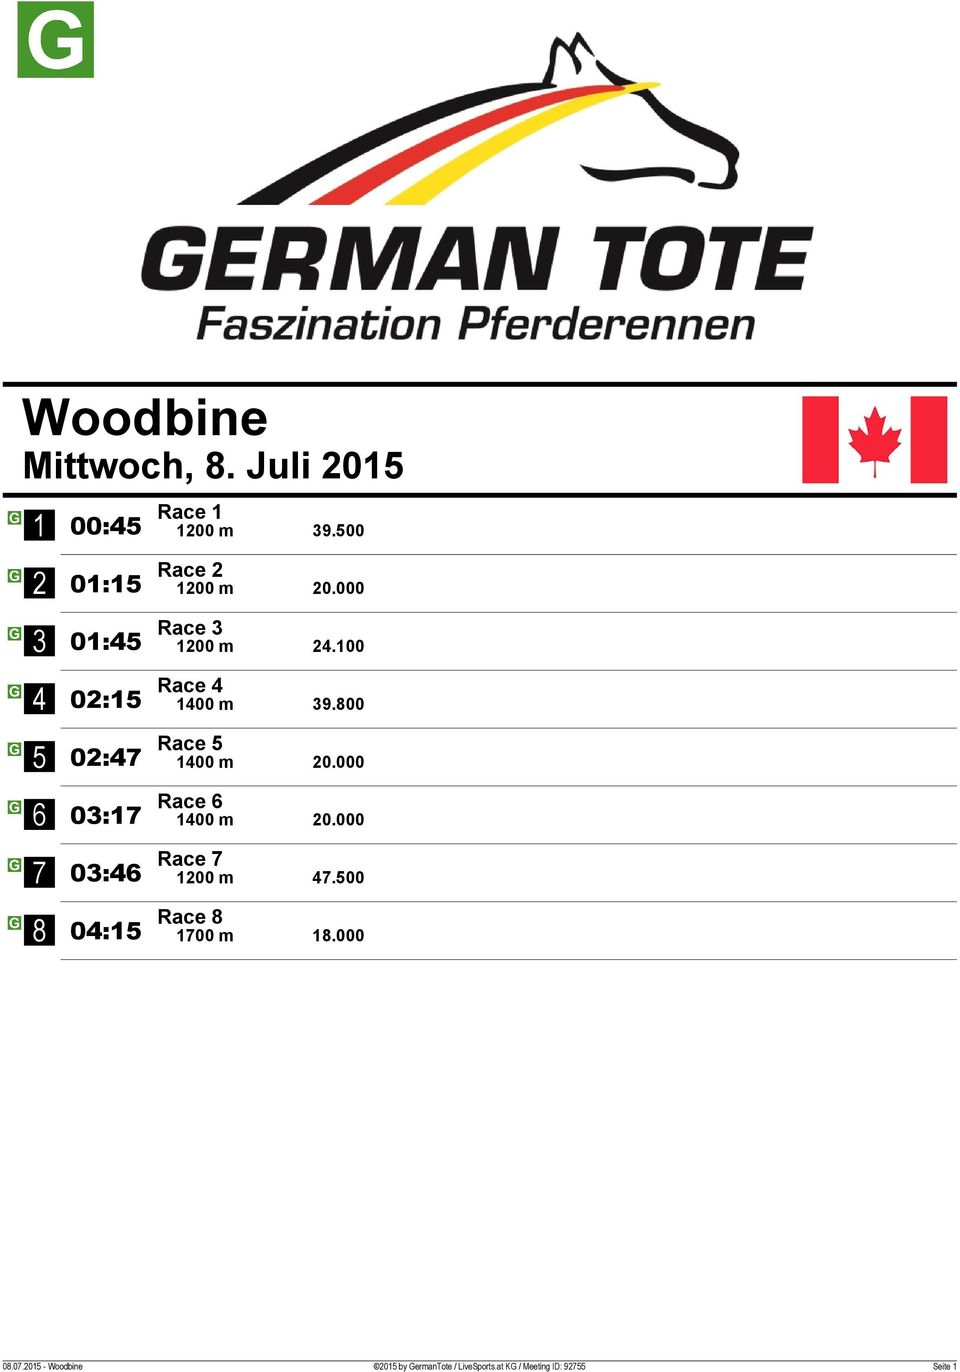 000 0: Race 00 m 0.000 0: Race 00 m.00 0: Race 00 m.000 0.0.0 - Woodbine 0 by GermanTote / LiveSports.